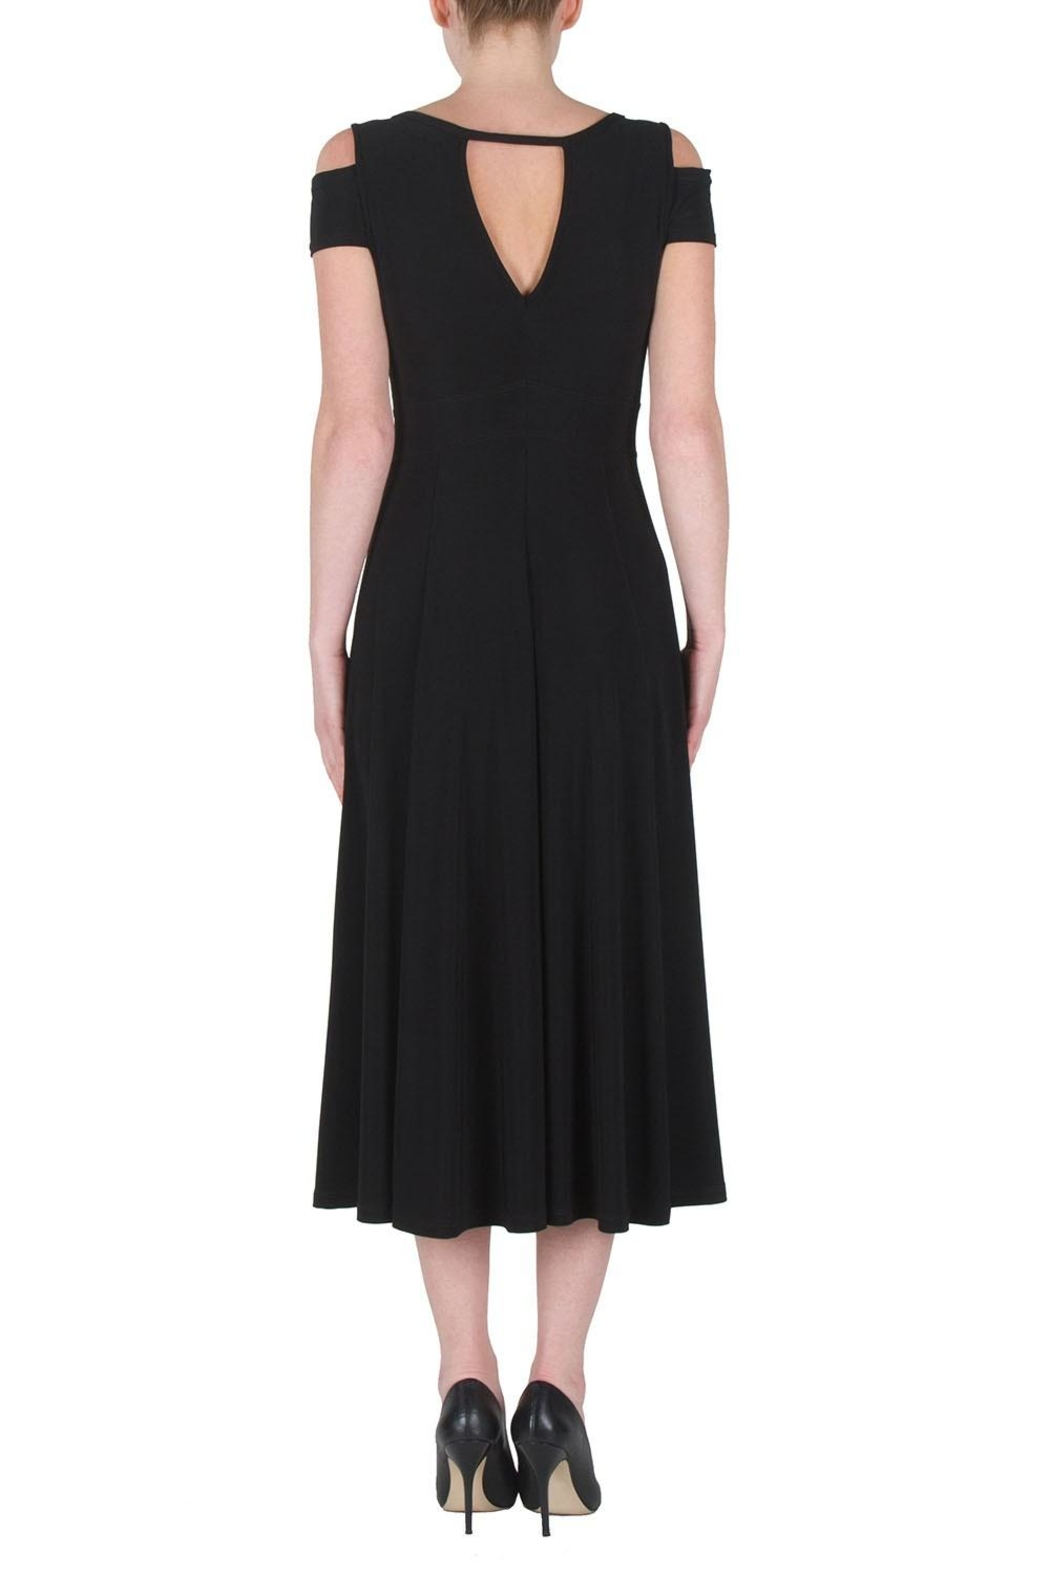 Joseph Ribkoff Cutouts Midi Dress - Side Cropped Image